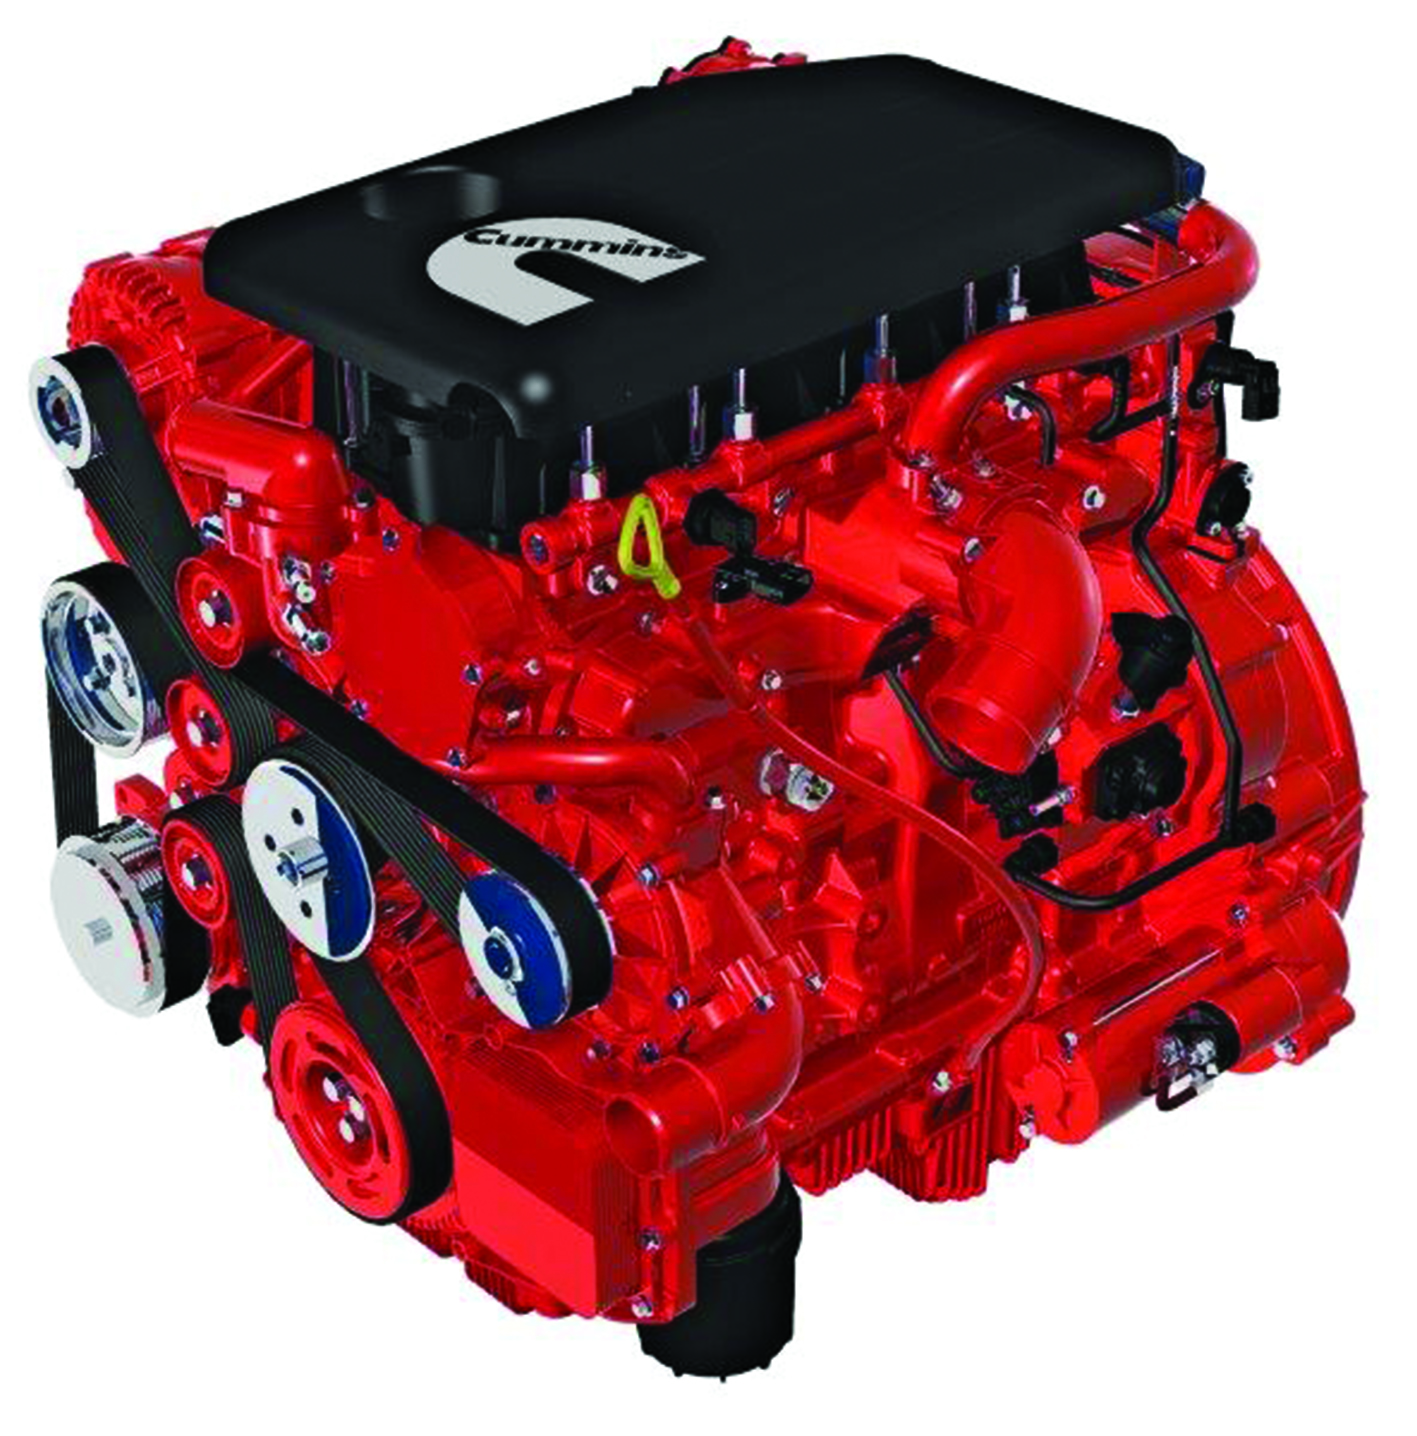 Diesel Engines Meet Euro Emissions Standards Credible Carbon Toyota Developing Worldfirst Vehicle Wiring Harnesses Recycling The Isf 28 And 38 L Four Cylinder Are Latest Additions To Cummins Range Of Customers Can Expect Benefit From Reliable